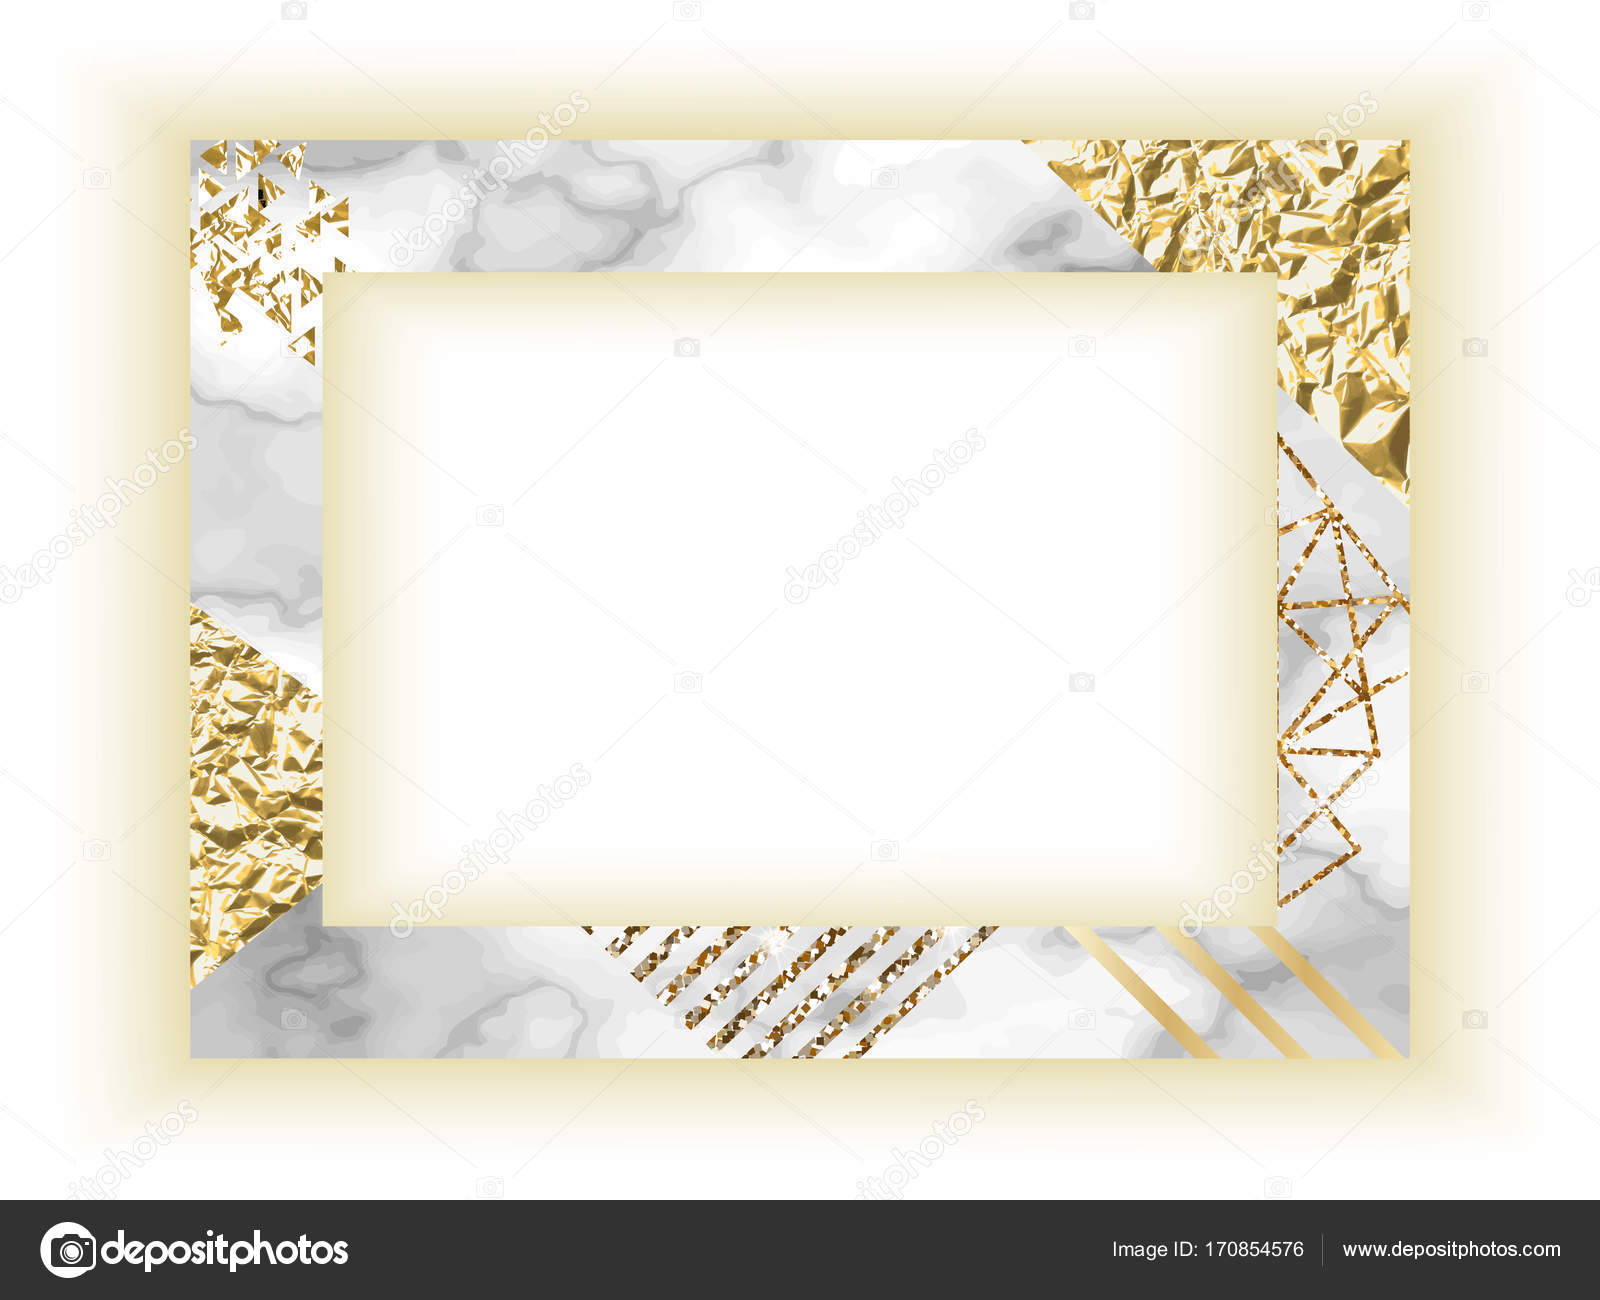 Frame template golden texture with border marble business card frame template golden texture with border marble business card or background in trendy minimalistic magicingreecefo Gallery